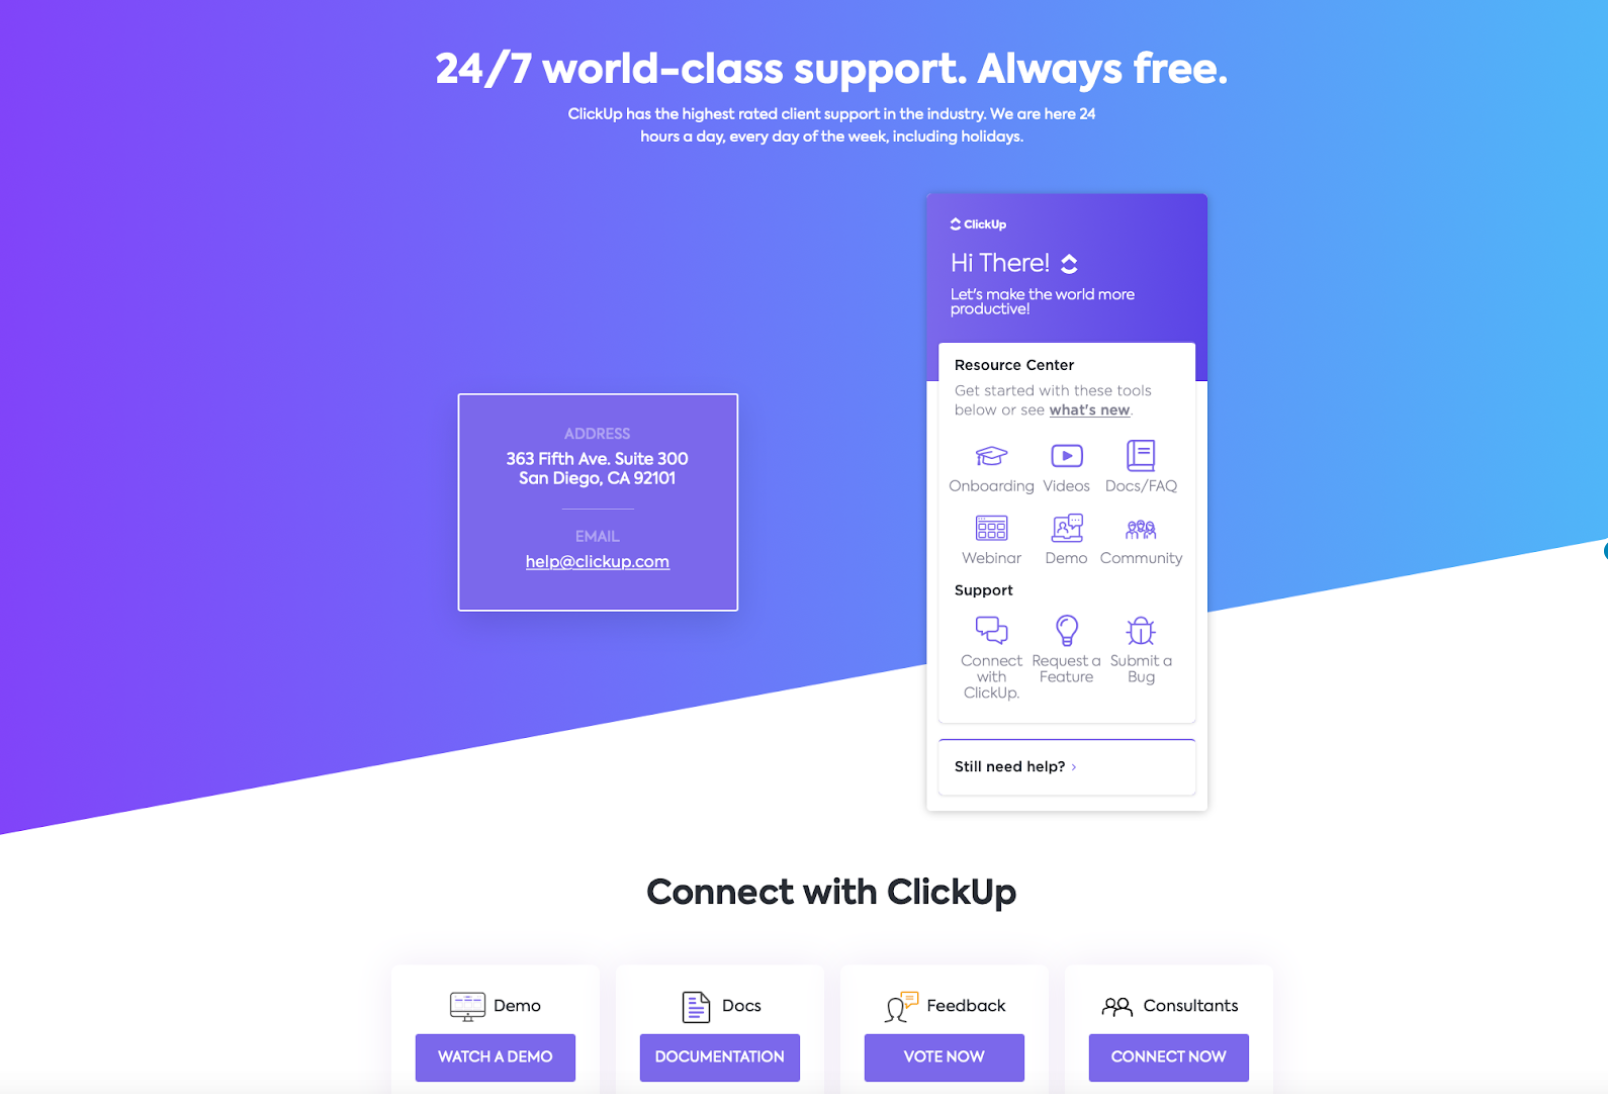 Clickup features